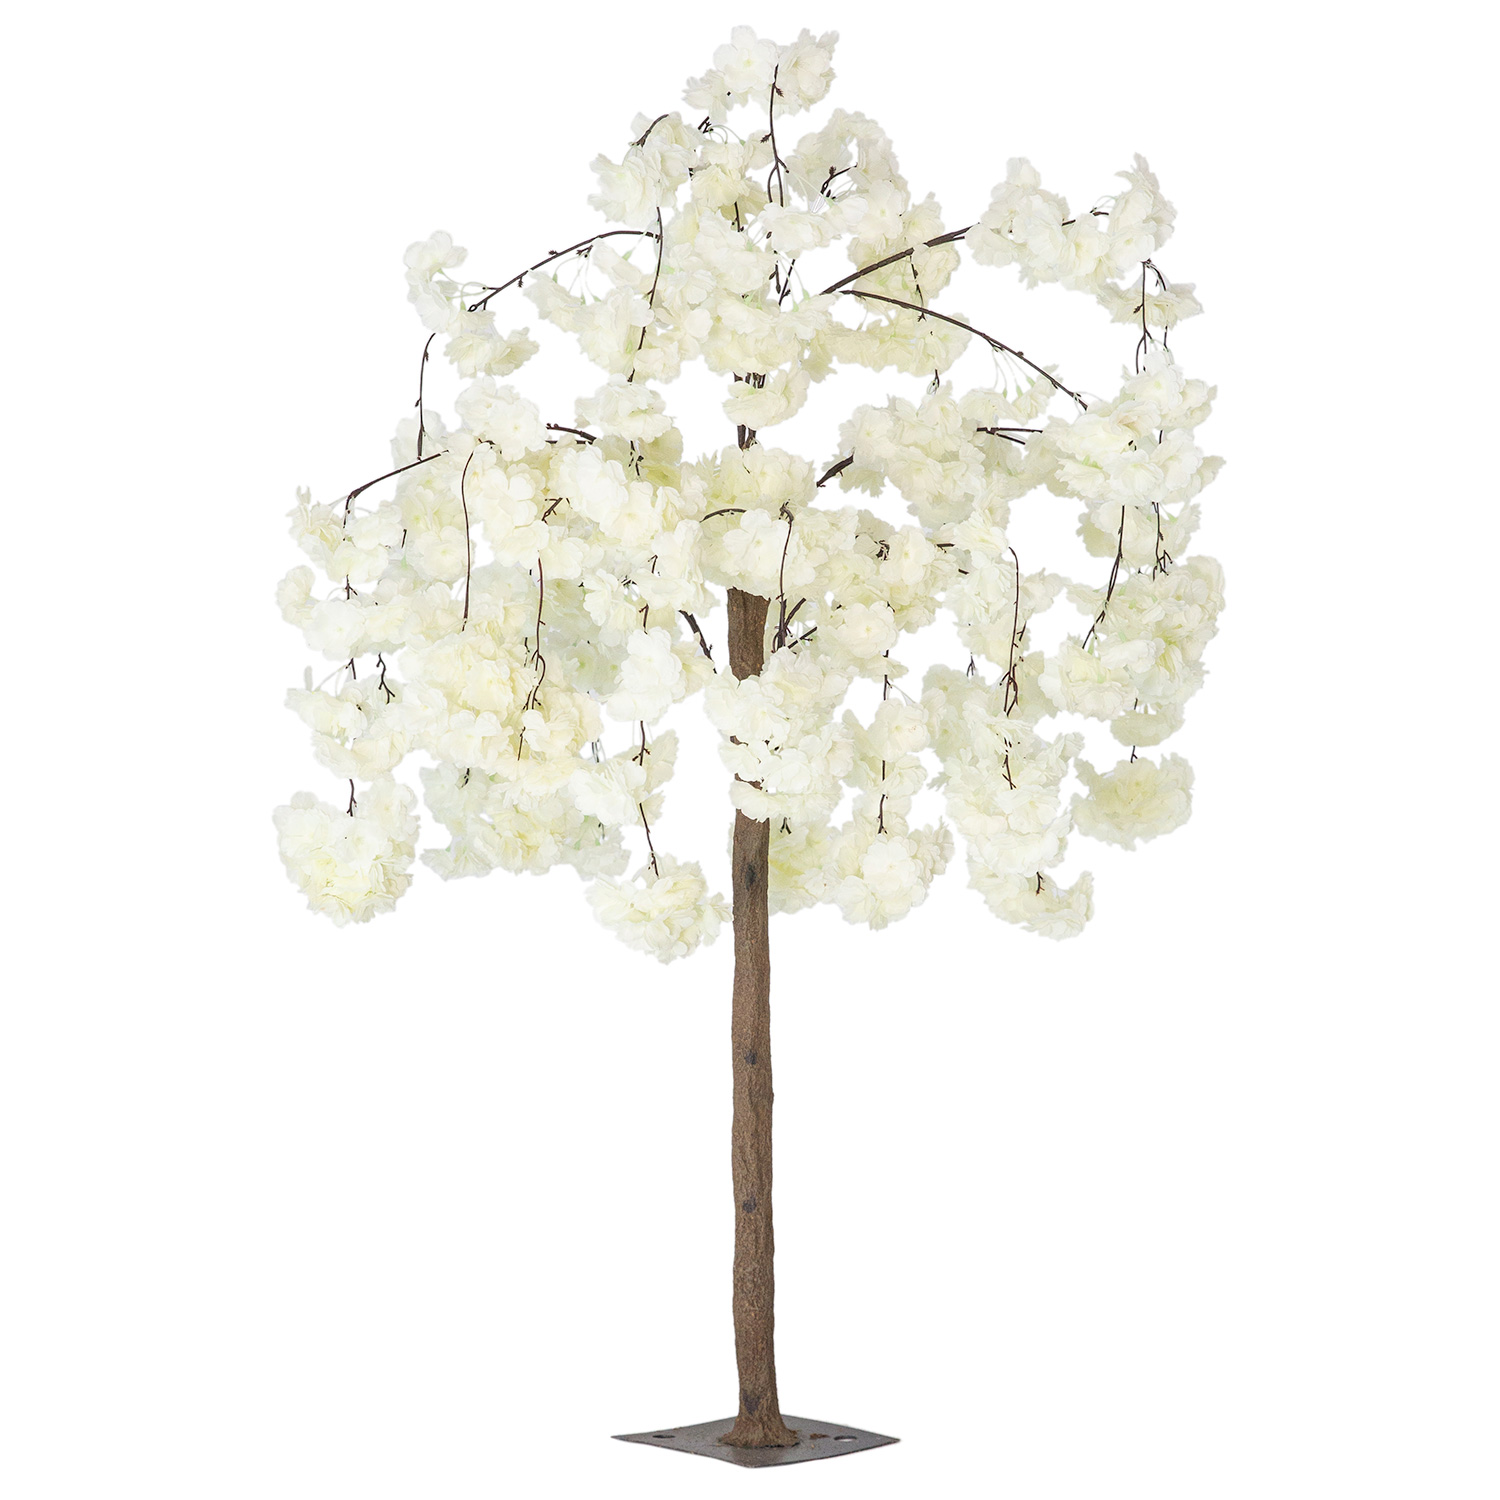 52 4 3ft Tall Fake Wisteria Bloom Tabletop Centerpieces Tree White